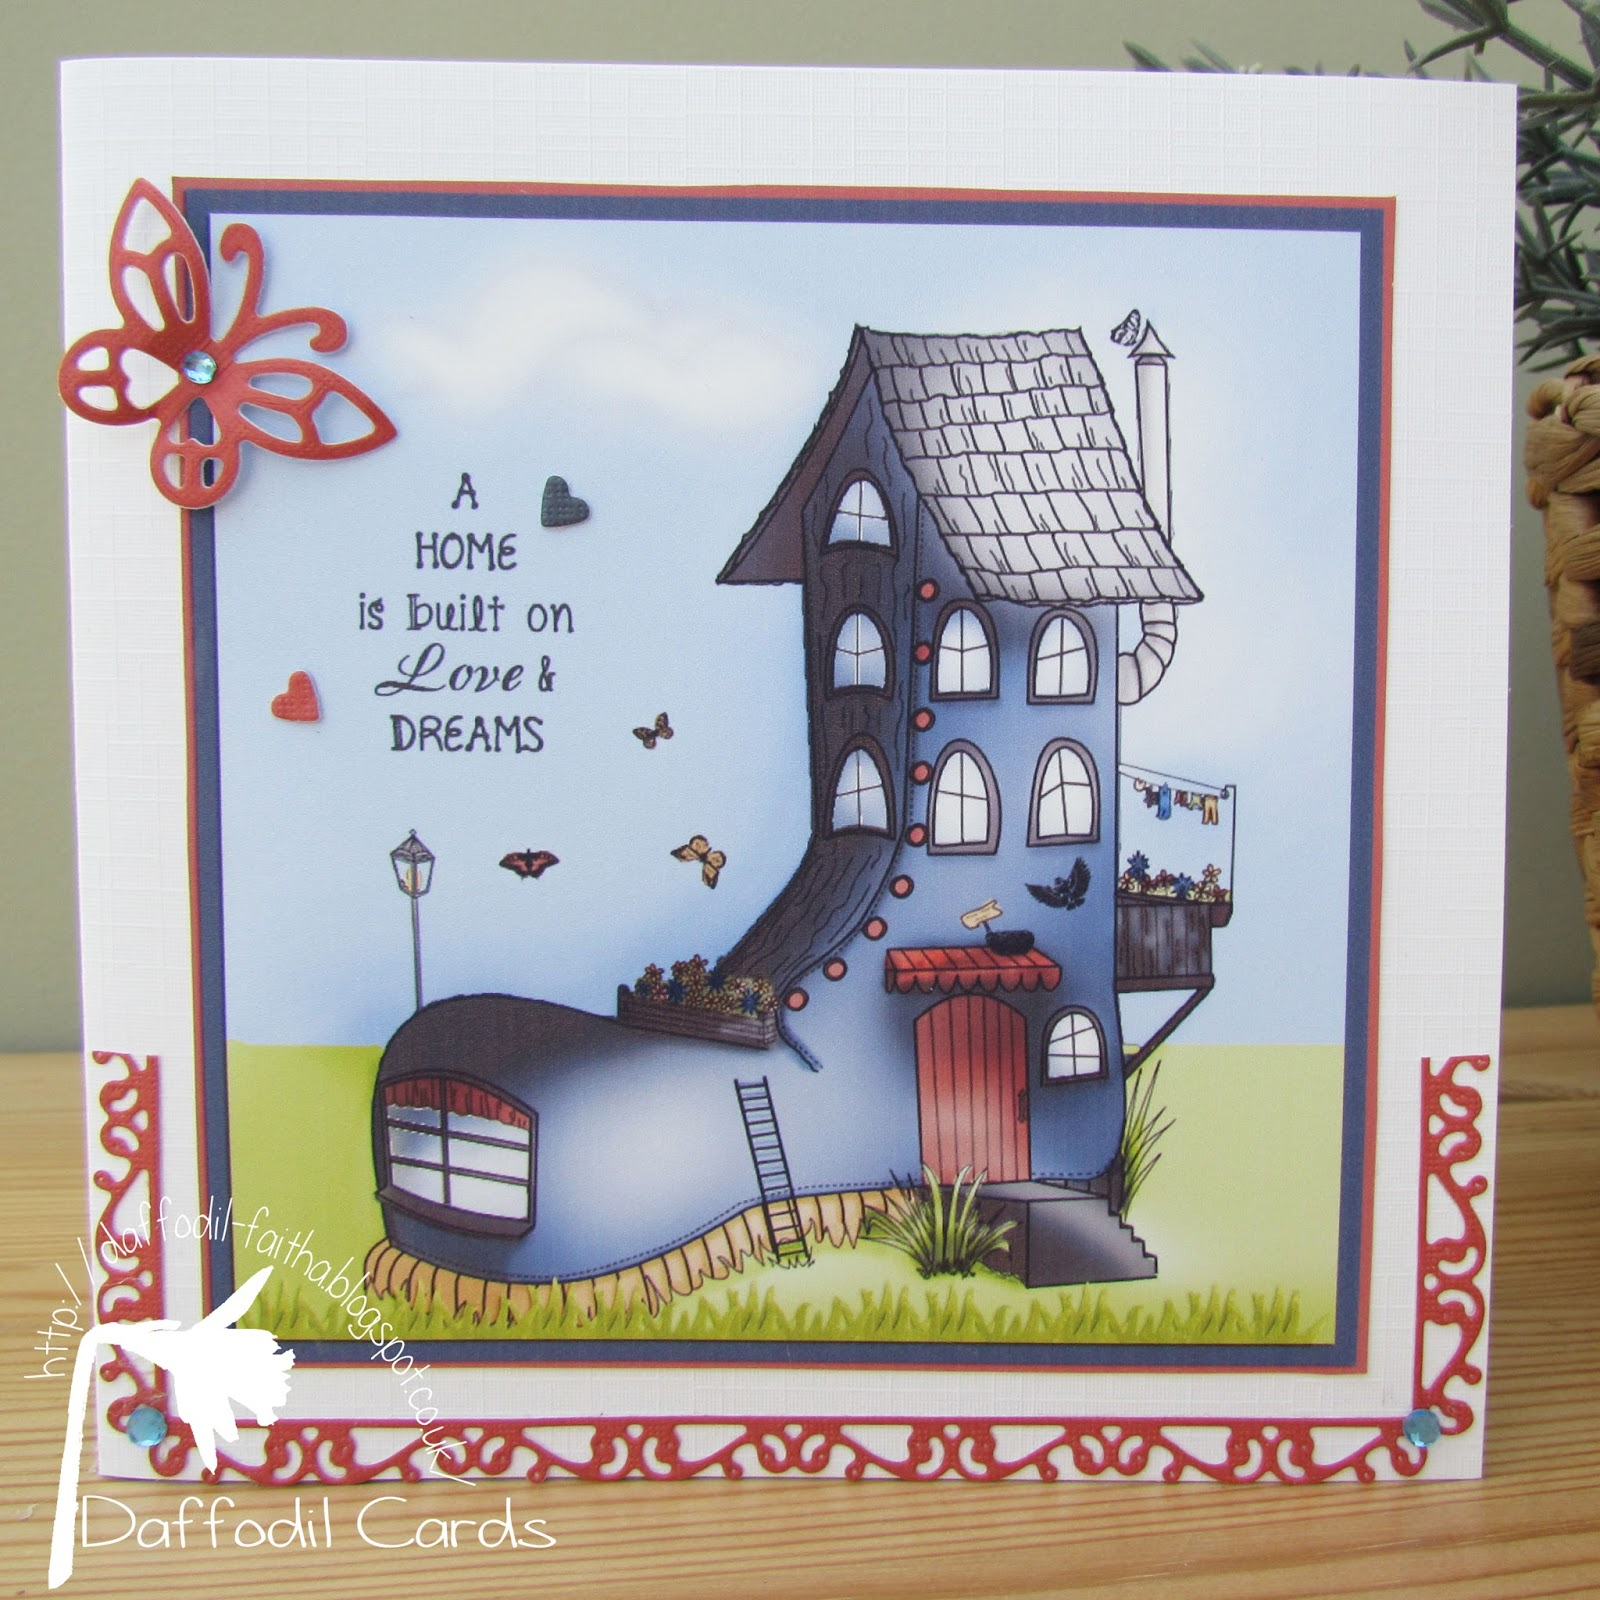 Daffodil Cards New Home Card